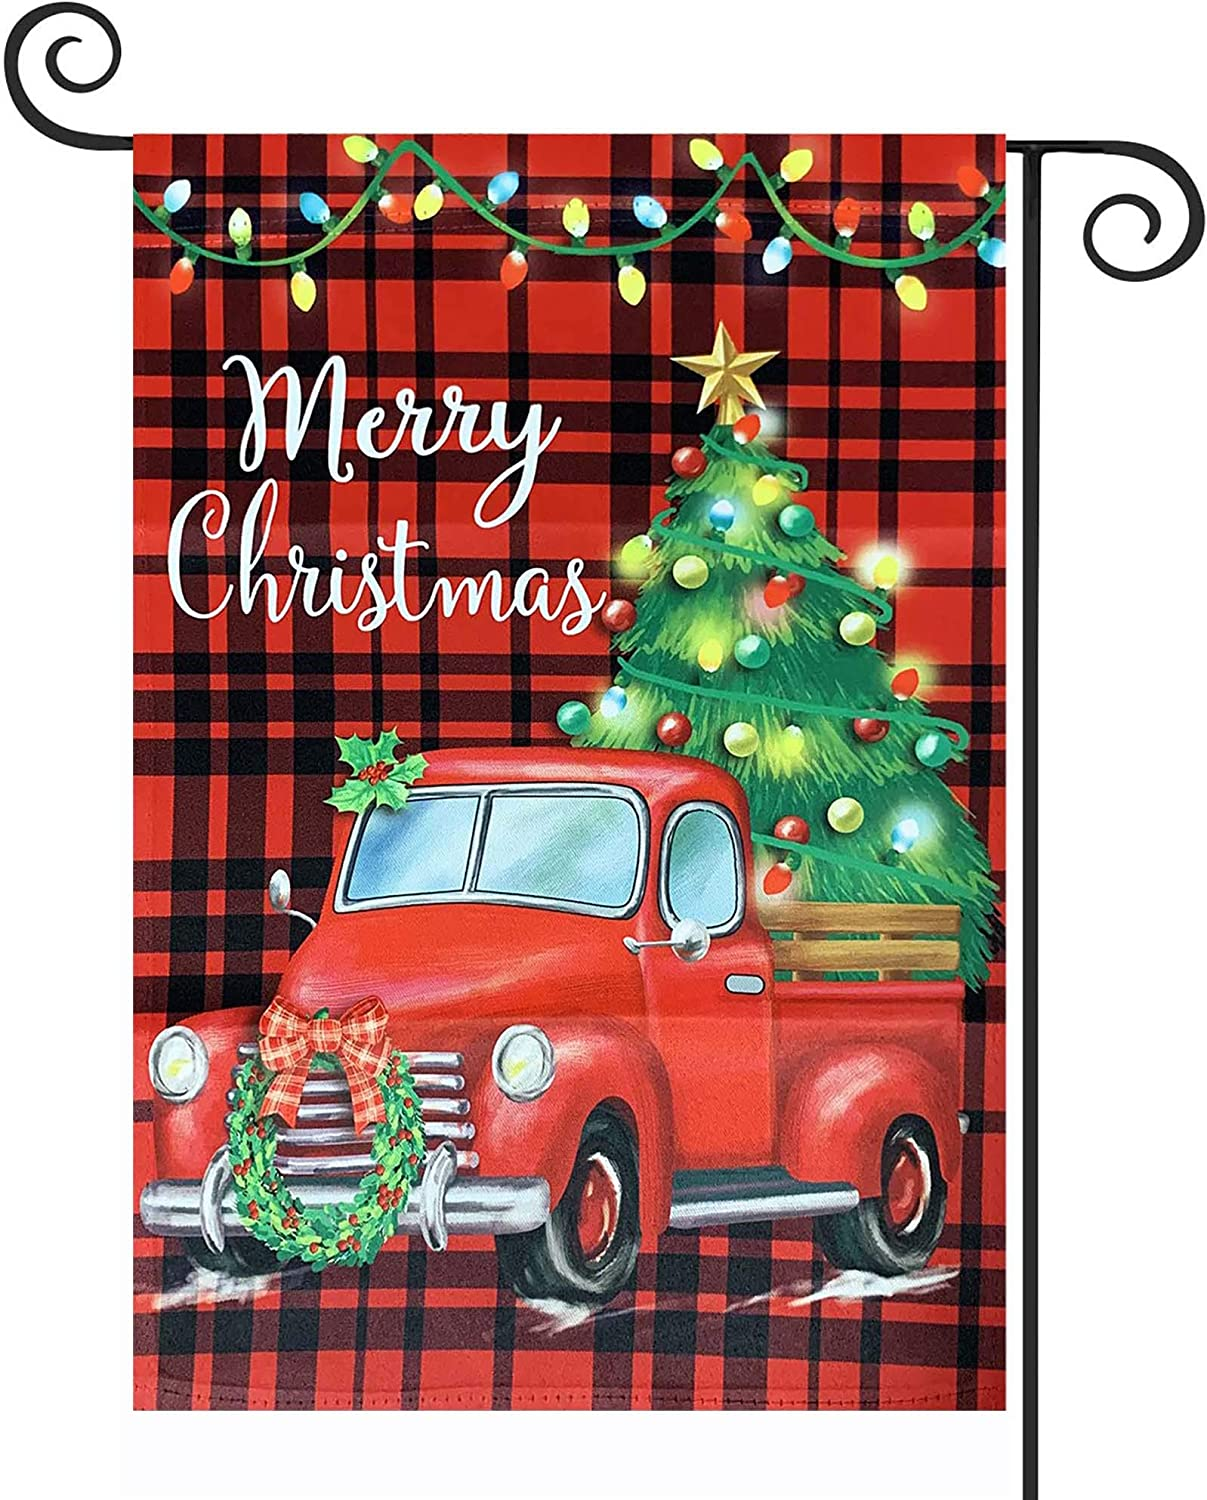 TOPFLAGS Christmas Garden Flag Double Sided, Red Truck Vintage Tree Buffalo Plaid Yard Flag, Merry Christmas Yard Outdoor Indoor Xmas Decoration 12.5 x 18 Inch